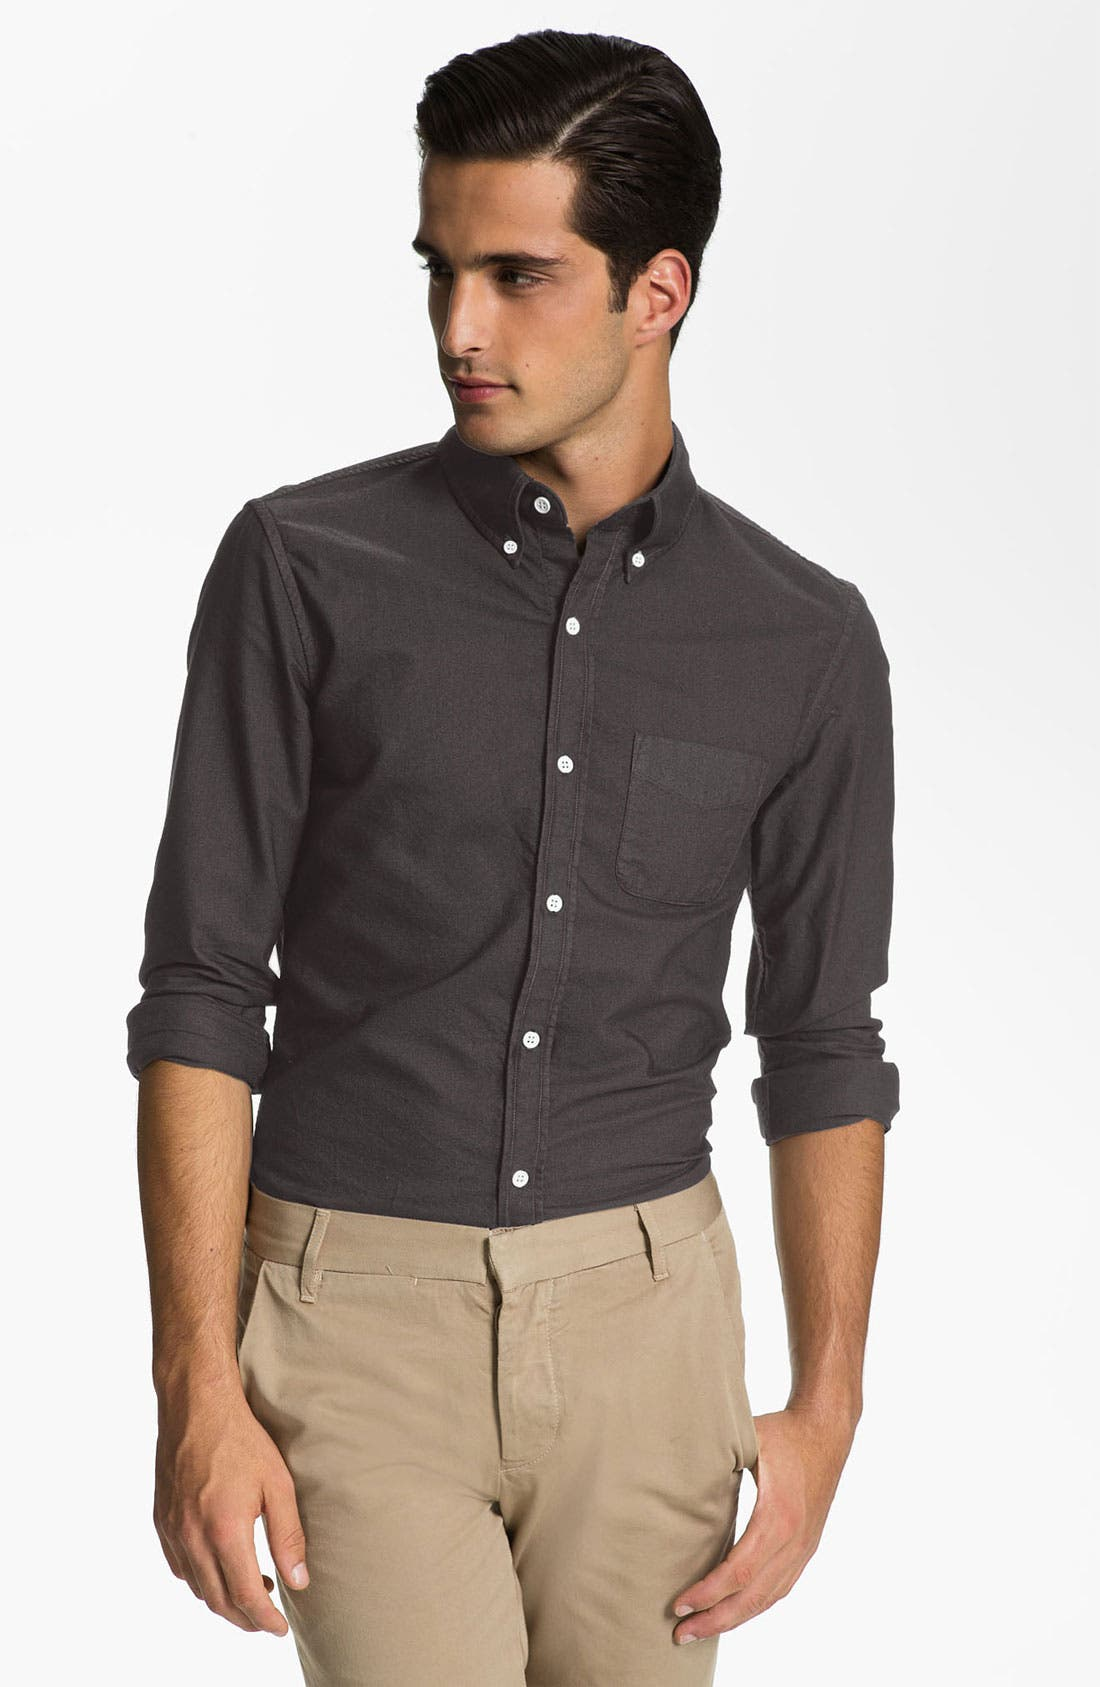 Main Image - Band of Outsiders Oxford Shirt